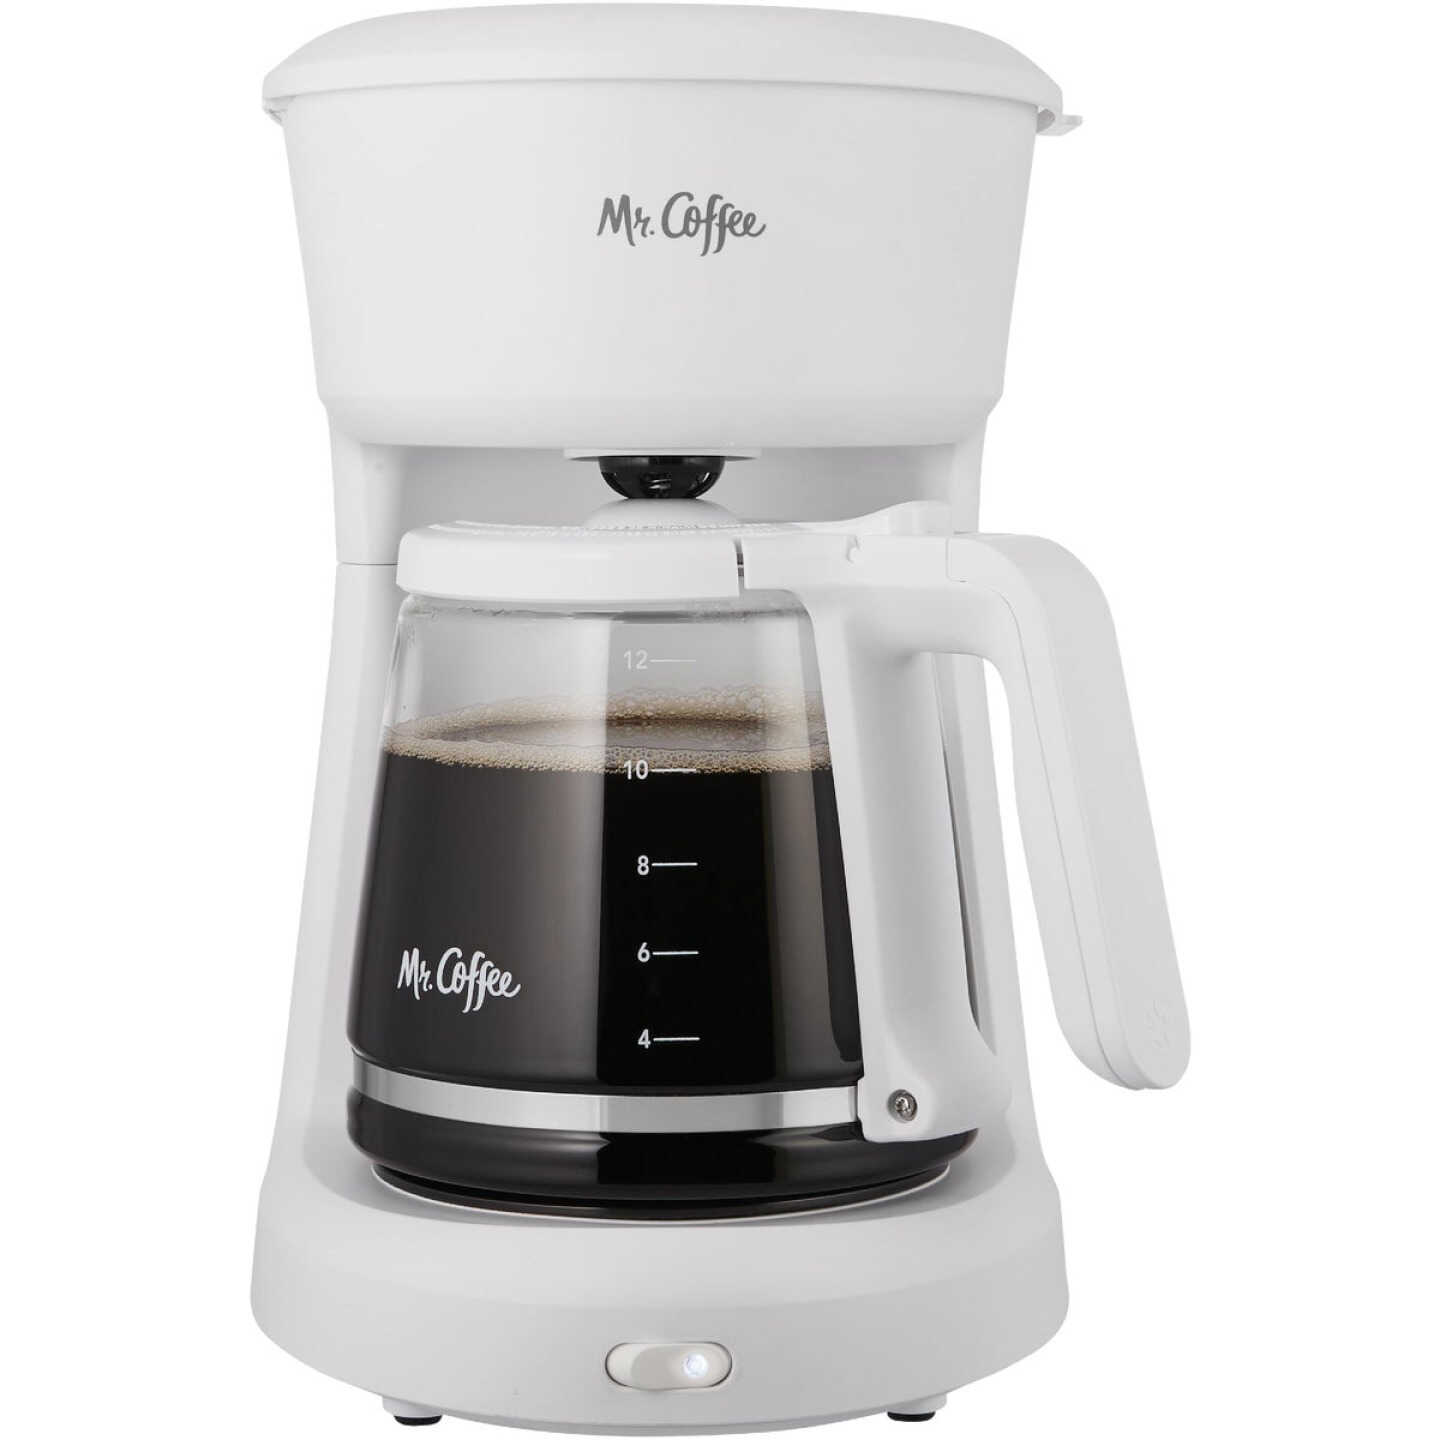 Mr Coffee 12 Cup Switch White Coffee Maker Image 1